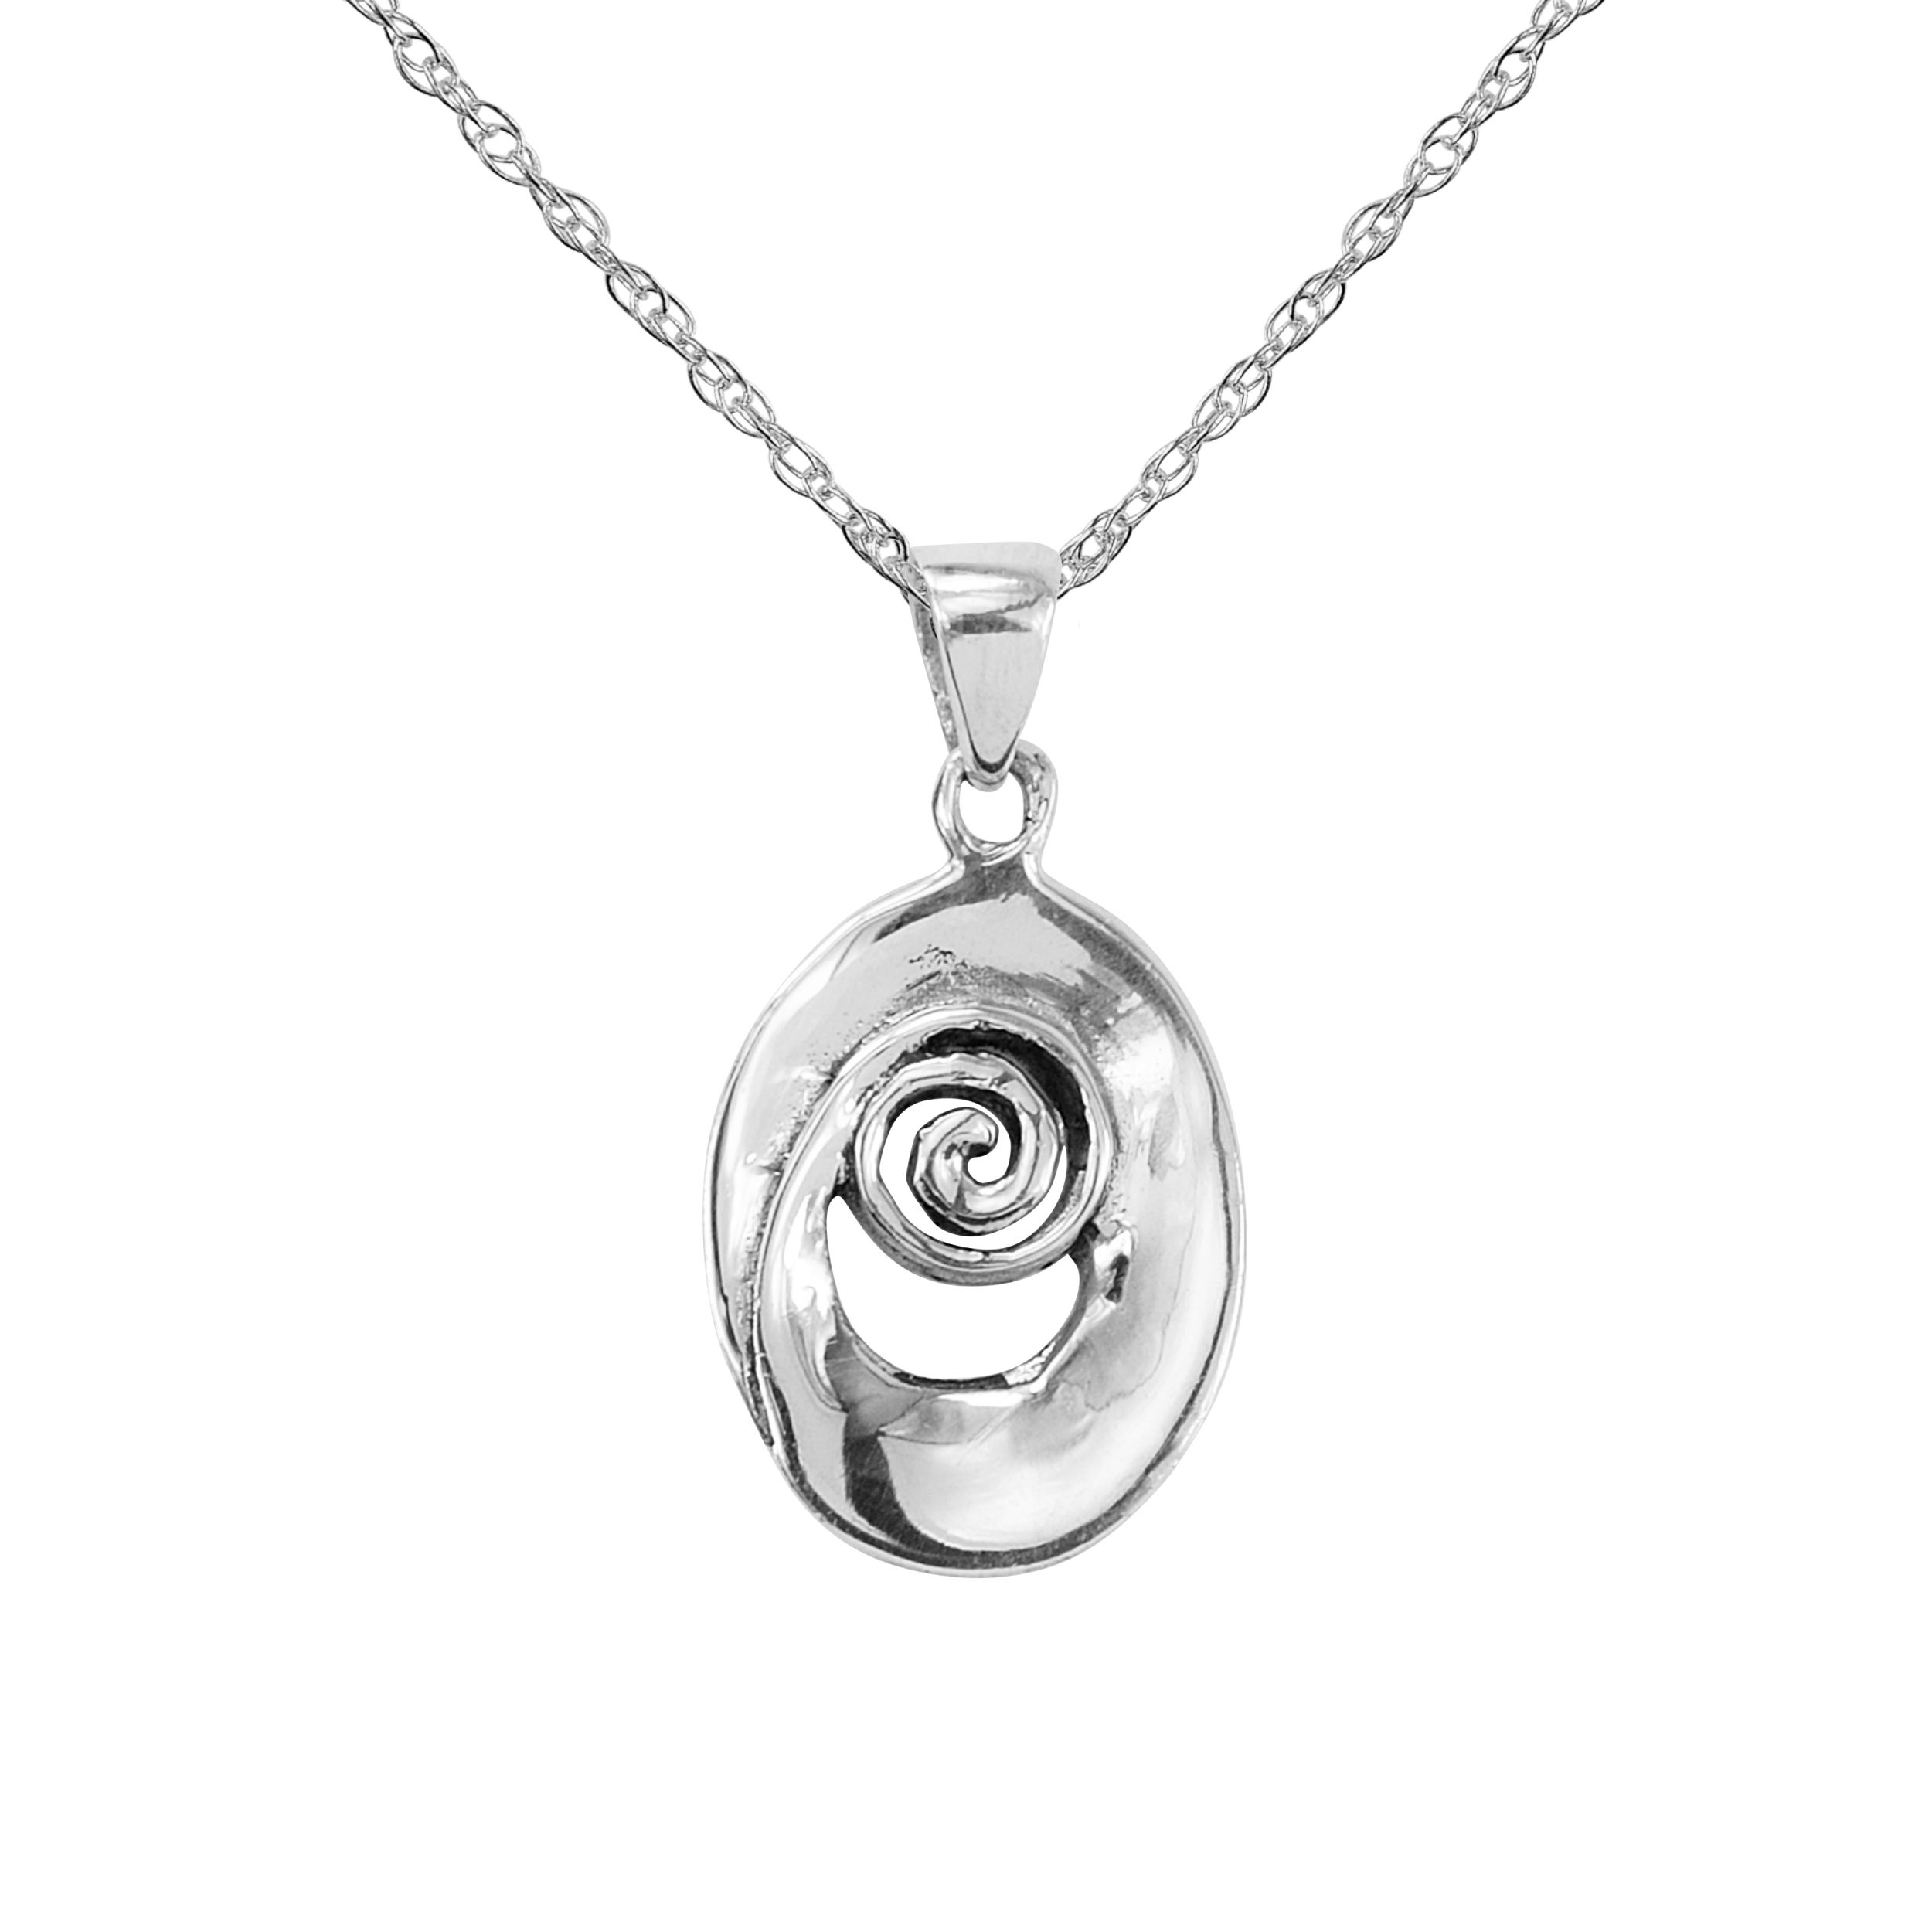 celtic cellinspip linked in finish made aitkens from spiral necklace satin pendant pewter products